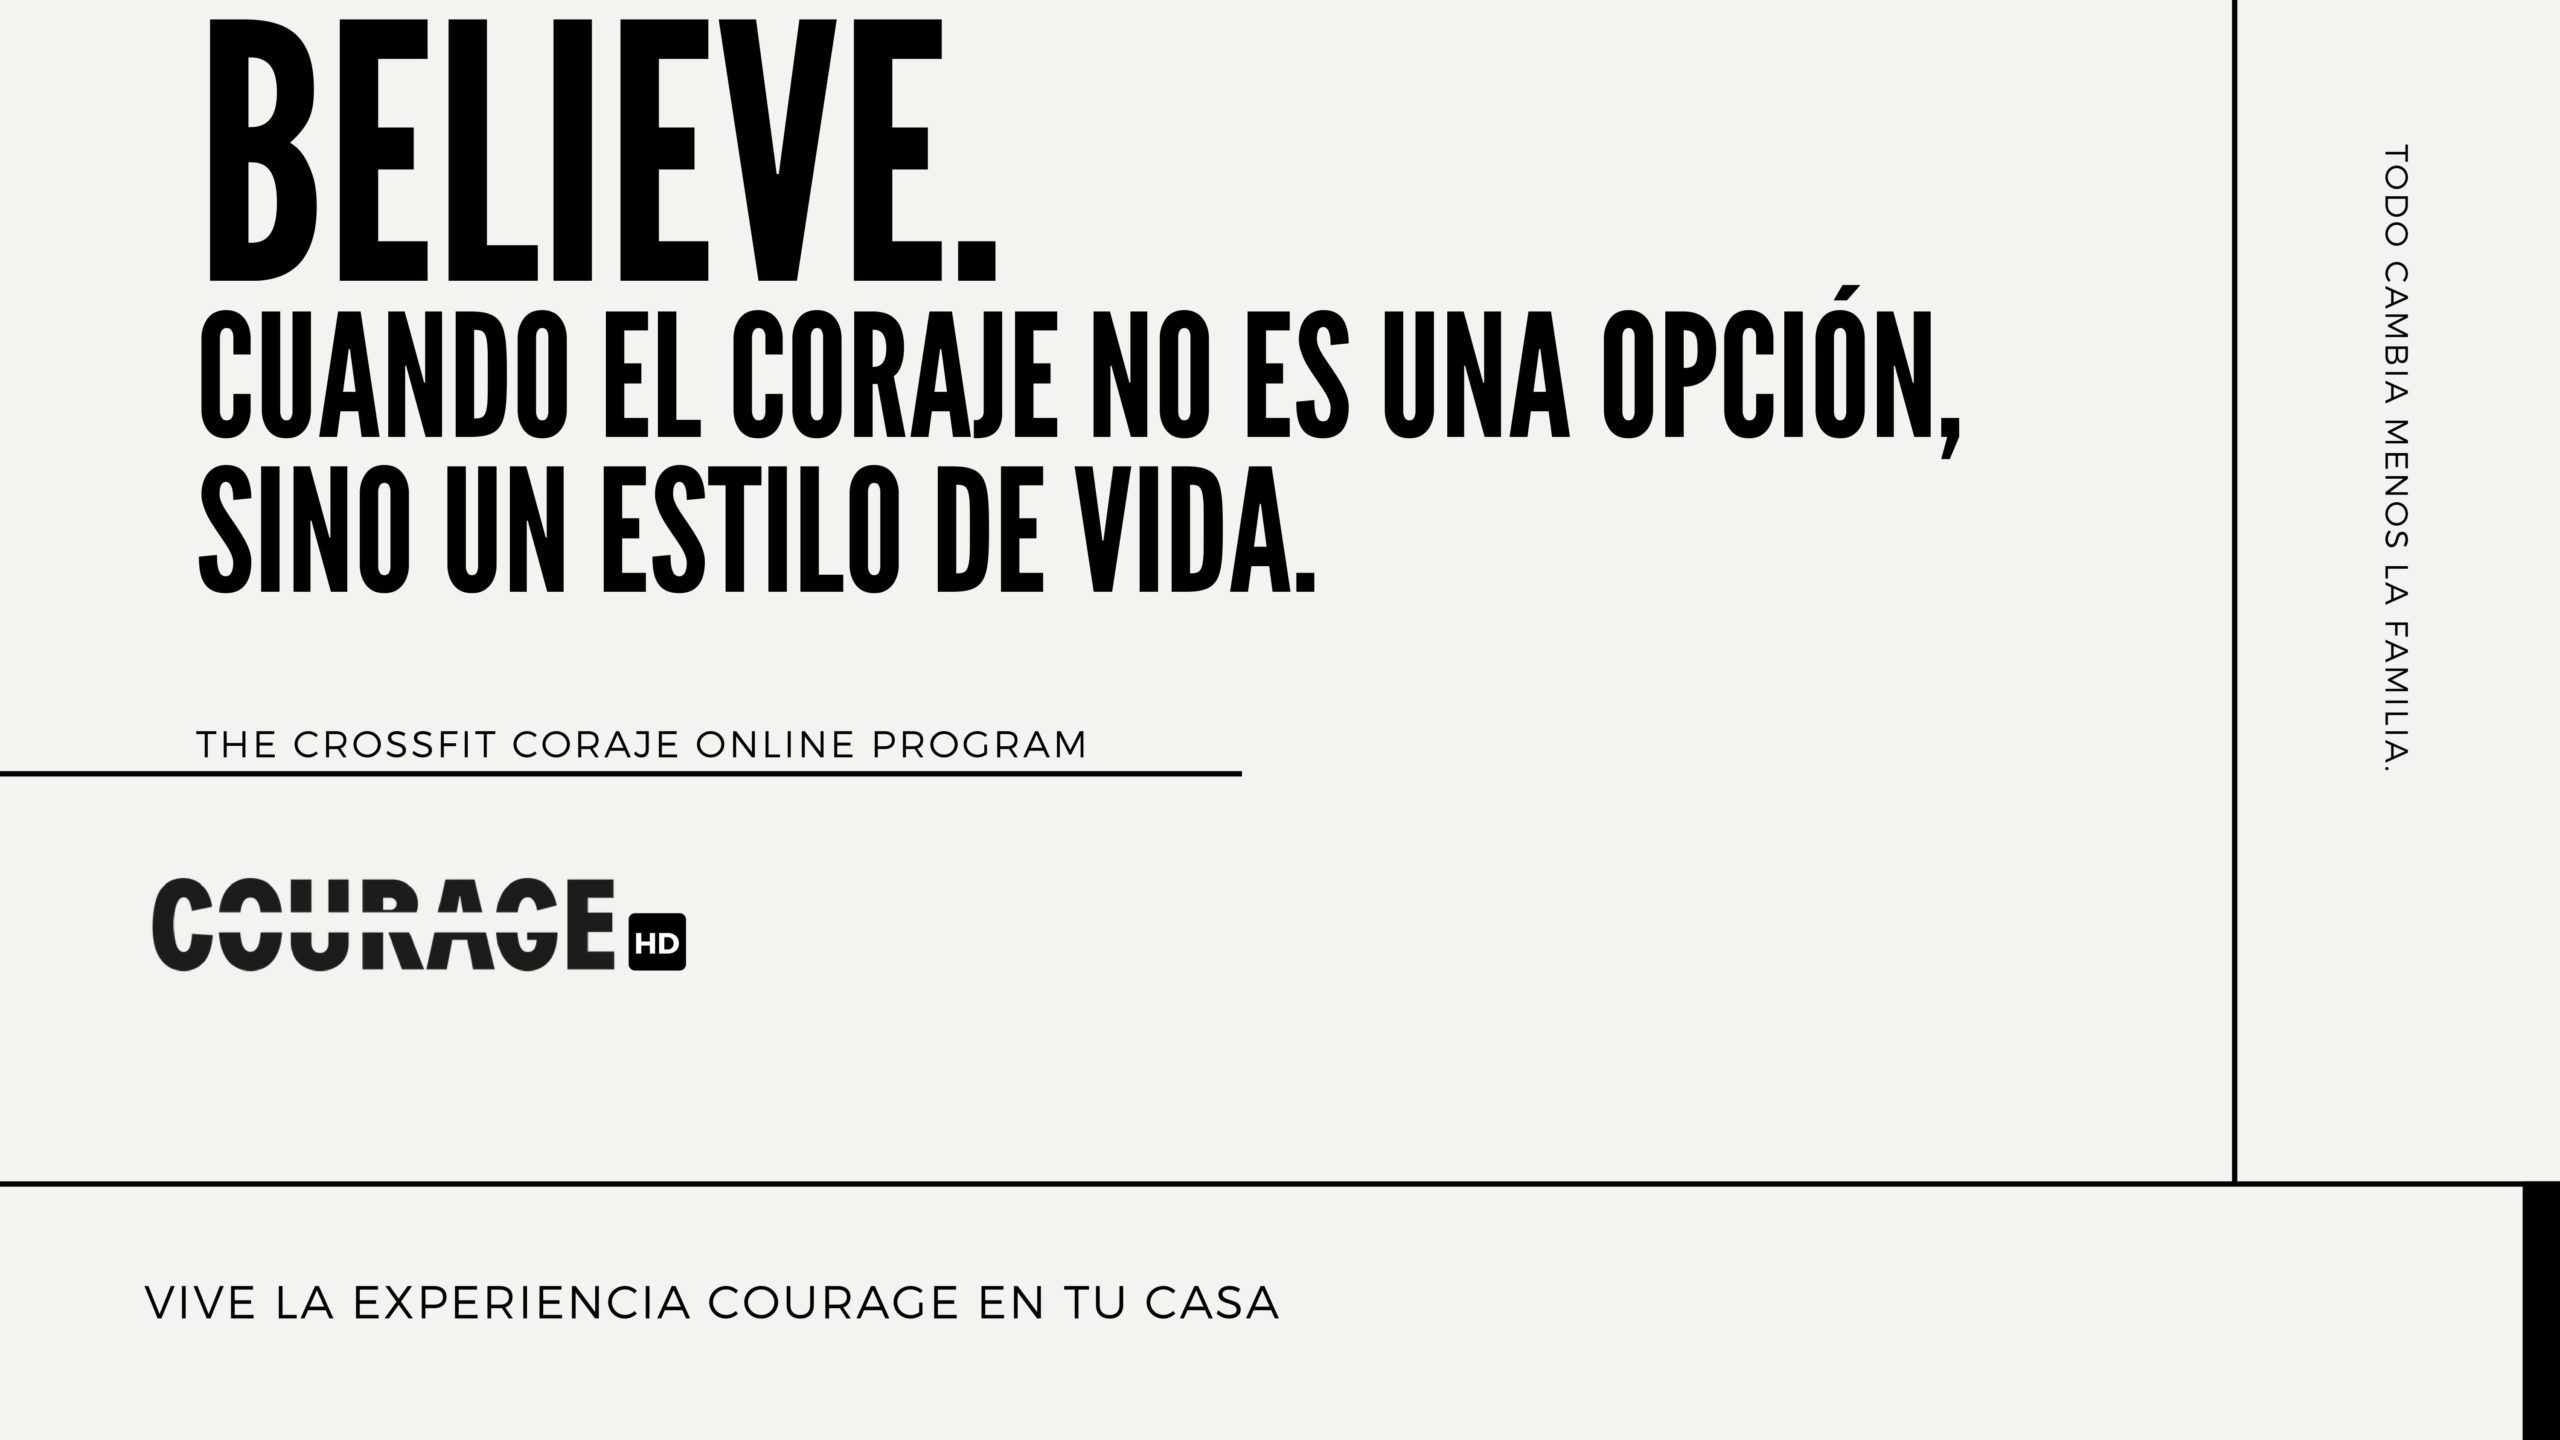 Believe - Courage HD